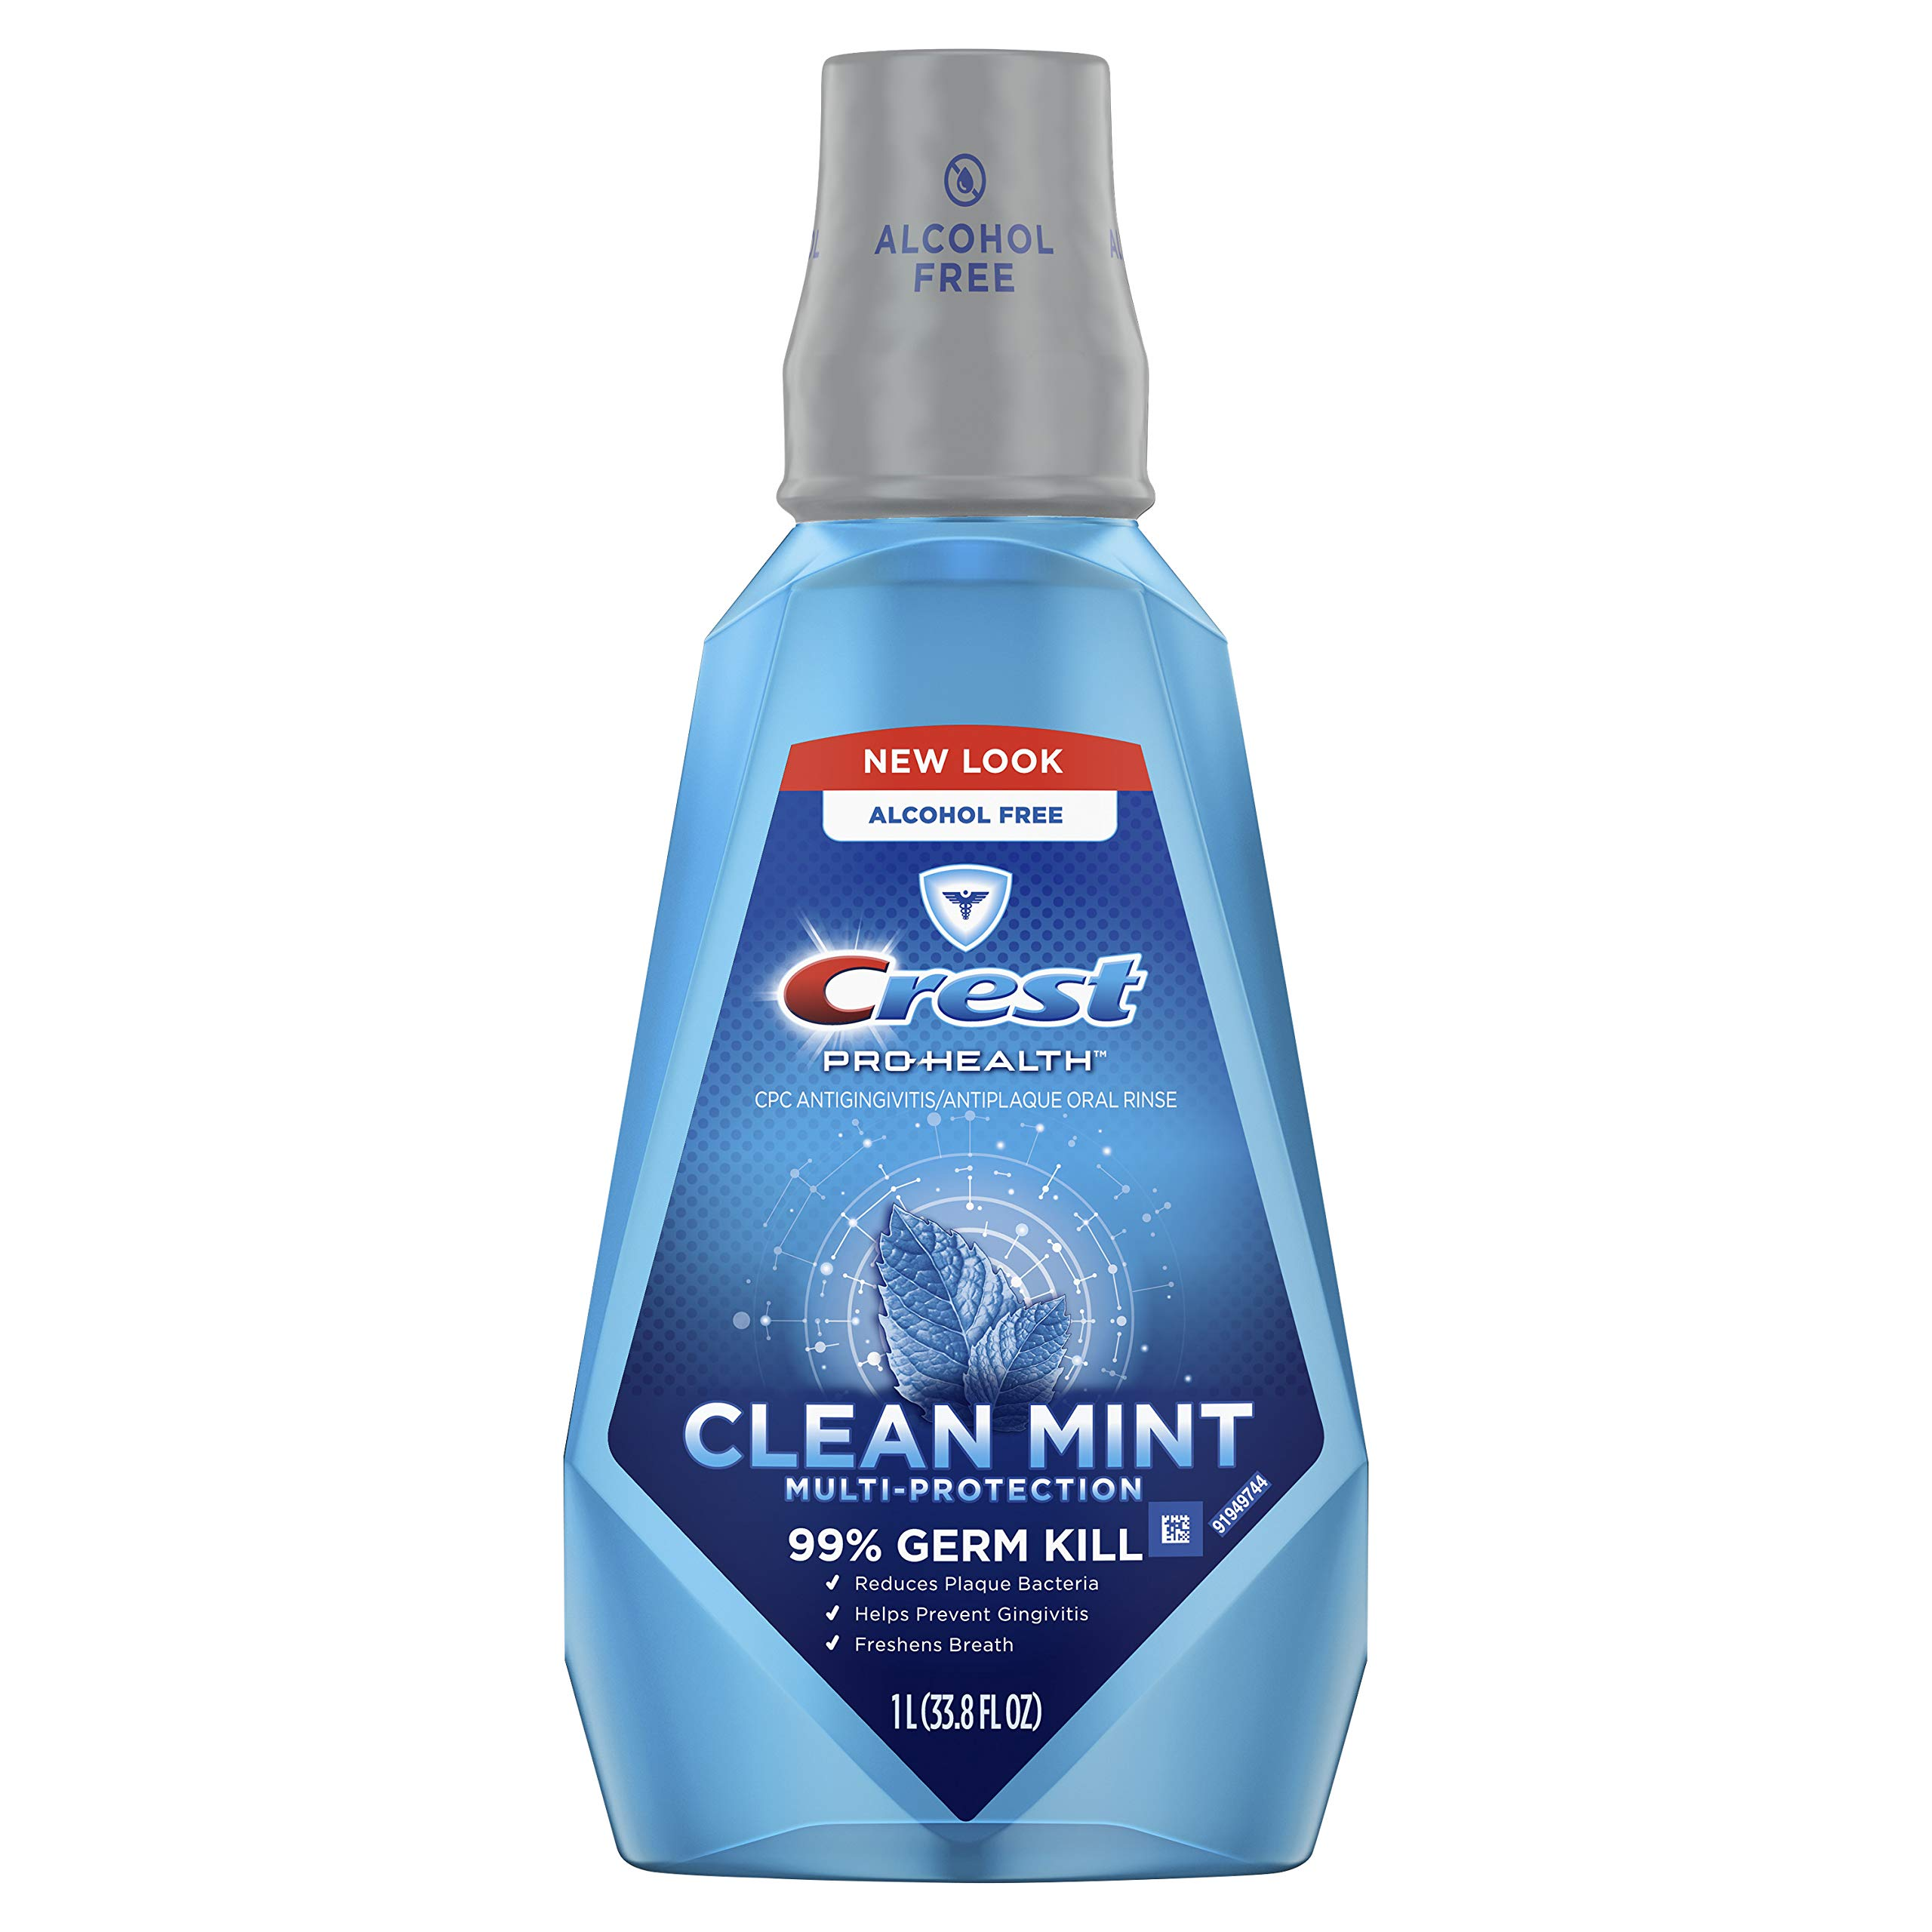 Crest ProHealth Multi-Protection Refreshing Mouthwash Clean Mint 33.8 fl oz